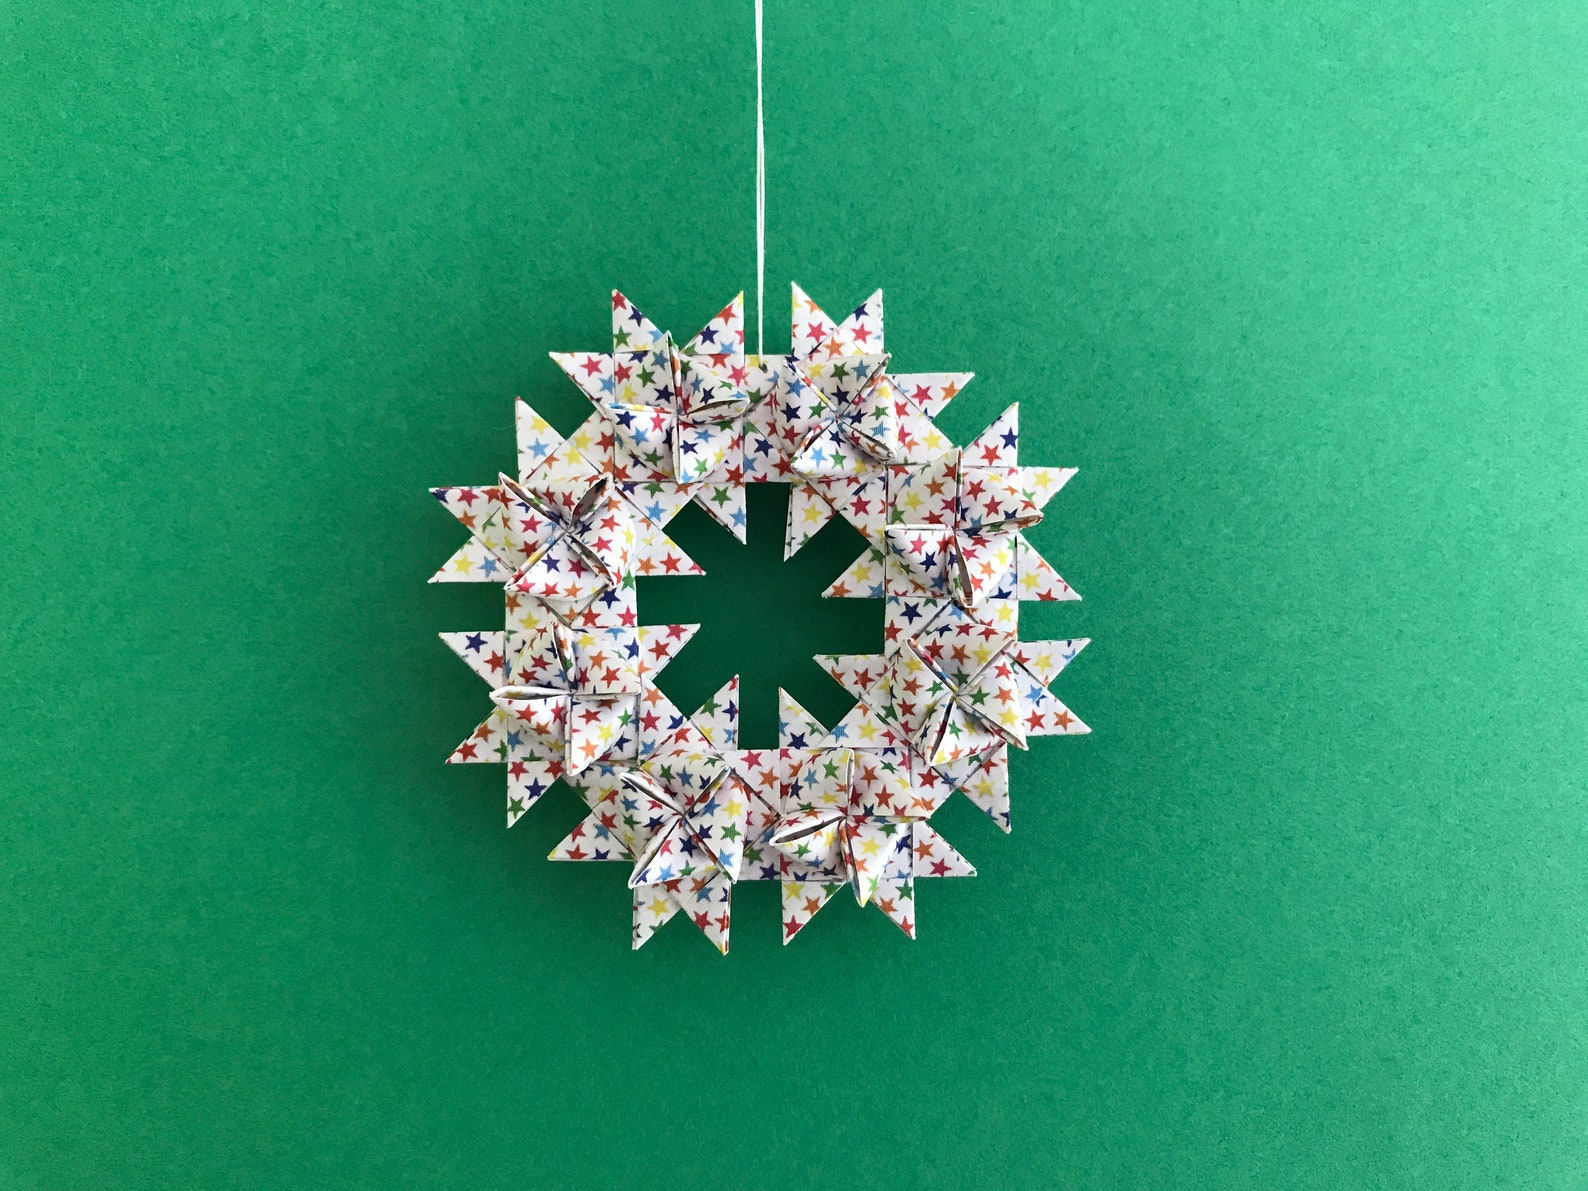 Moravian Star Wreath—Multi-colored stars